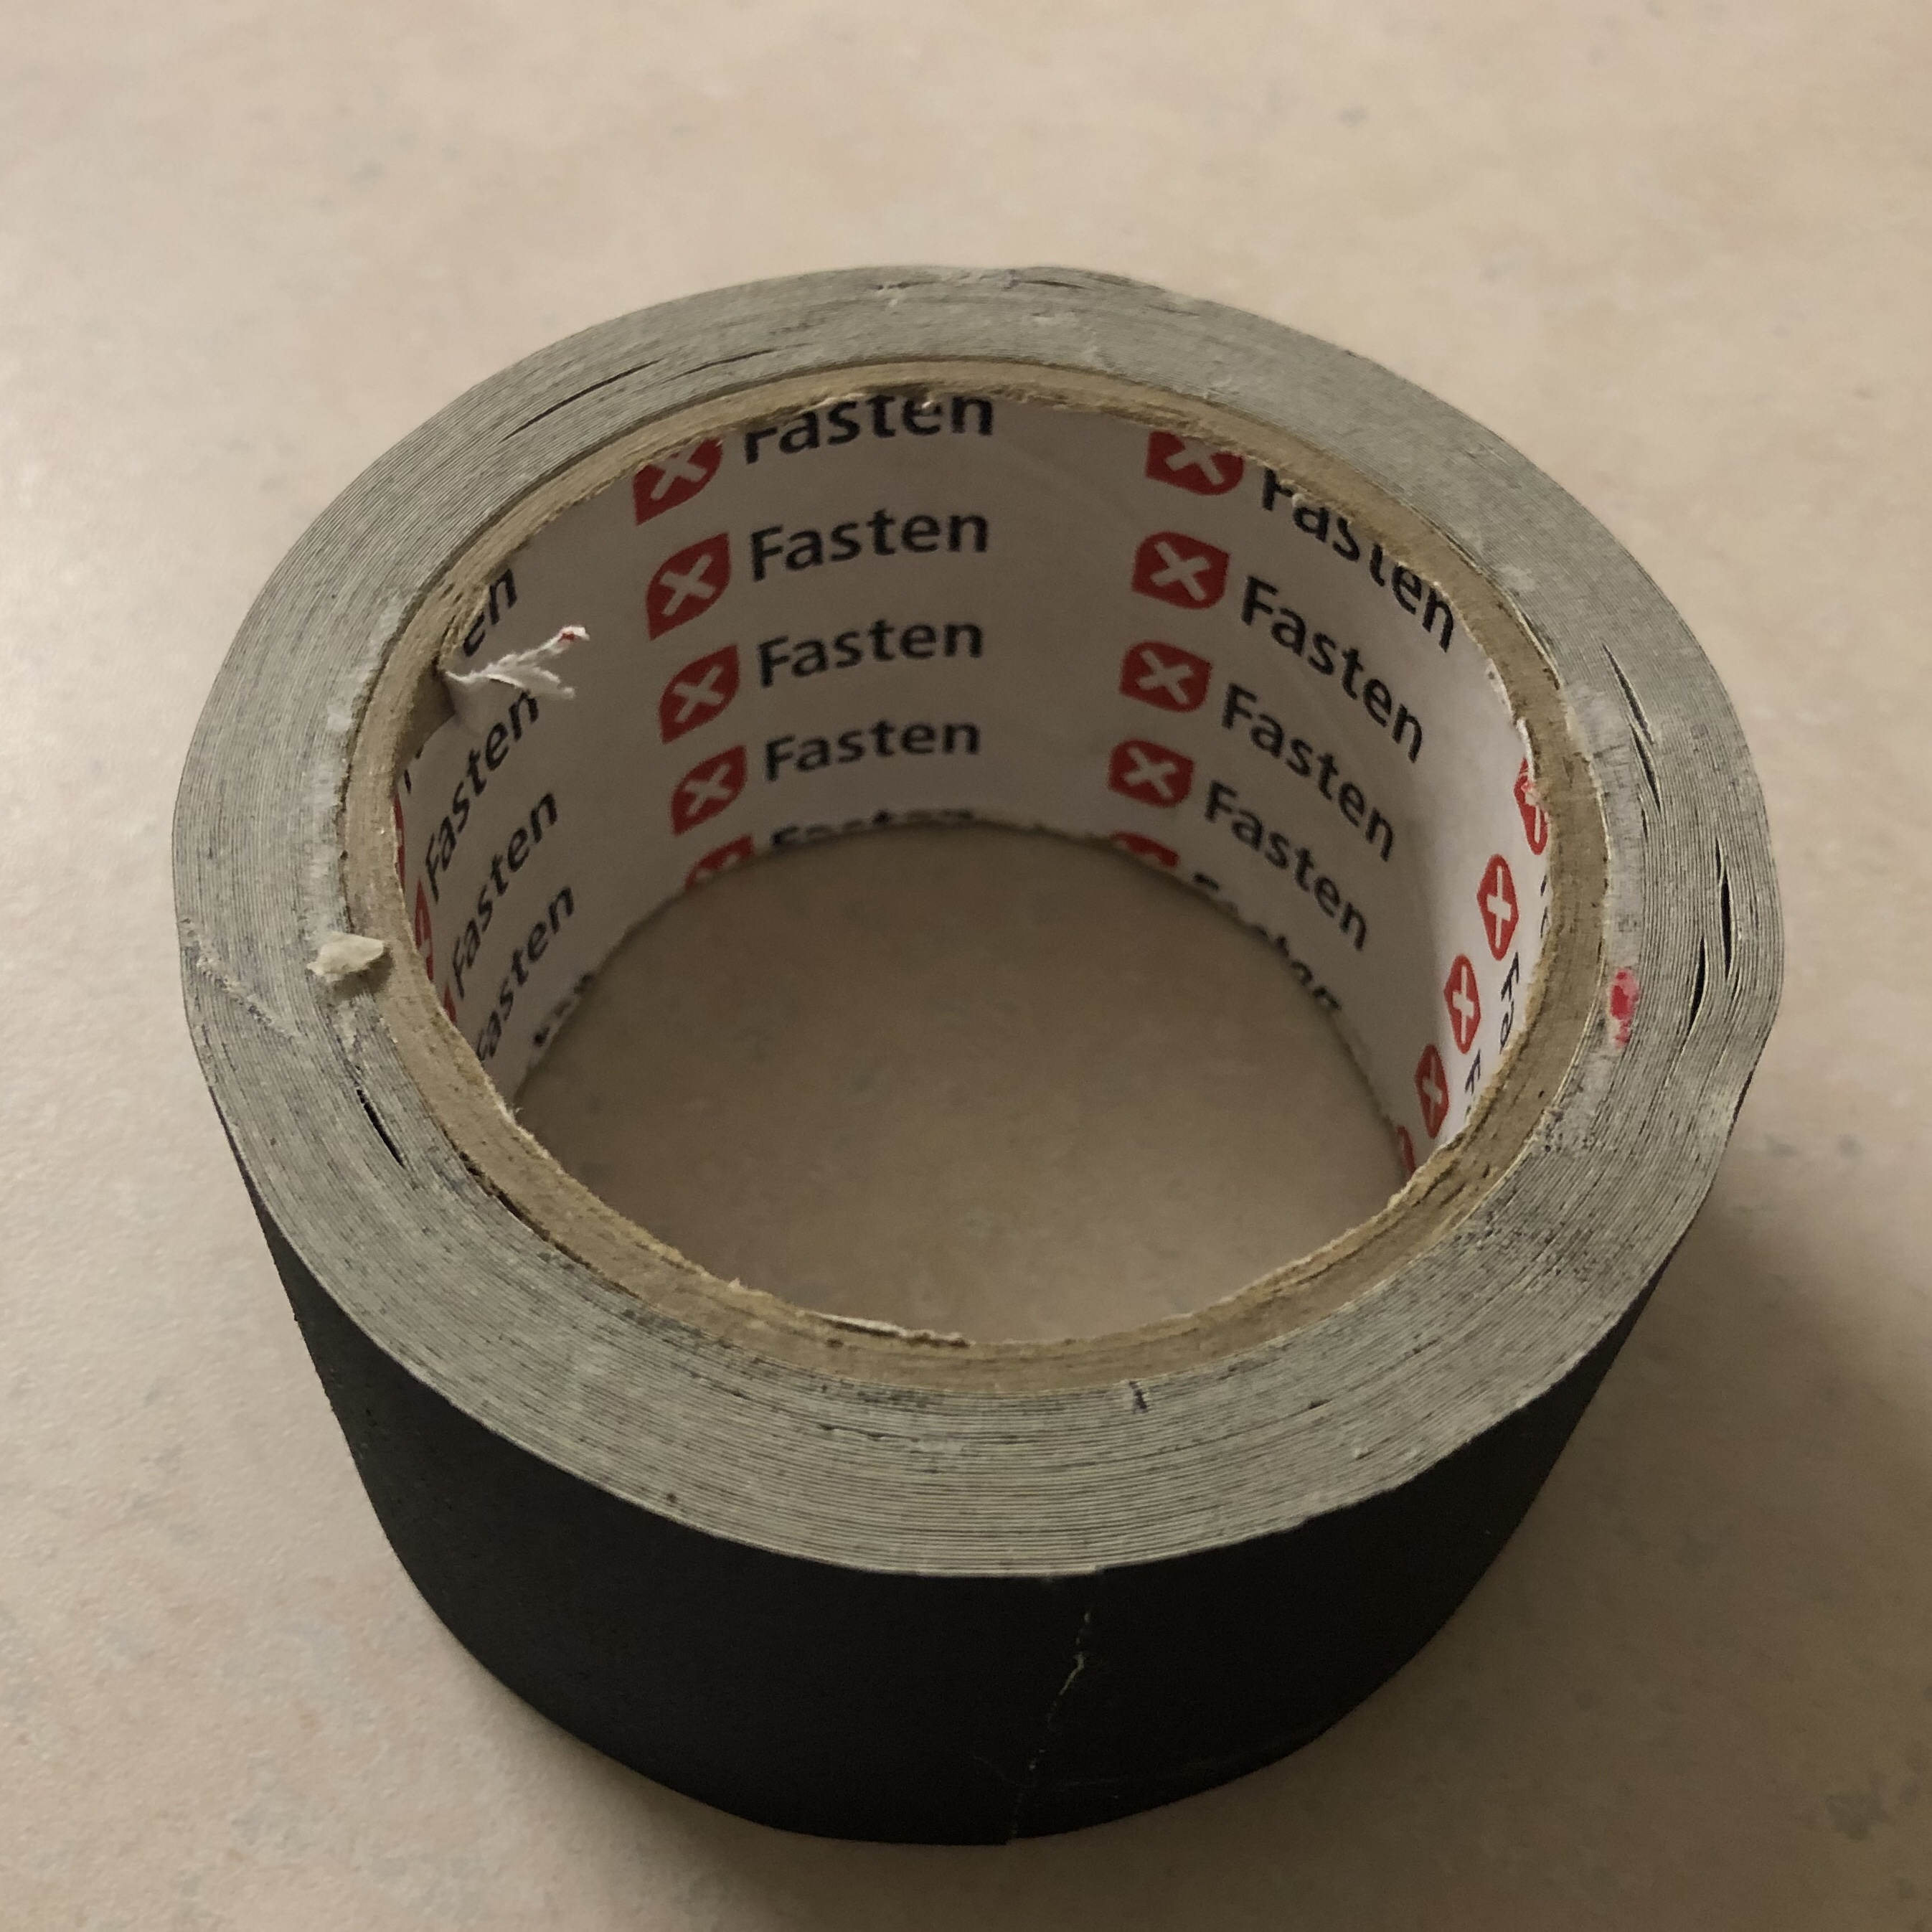 A roll of gaffer tape